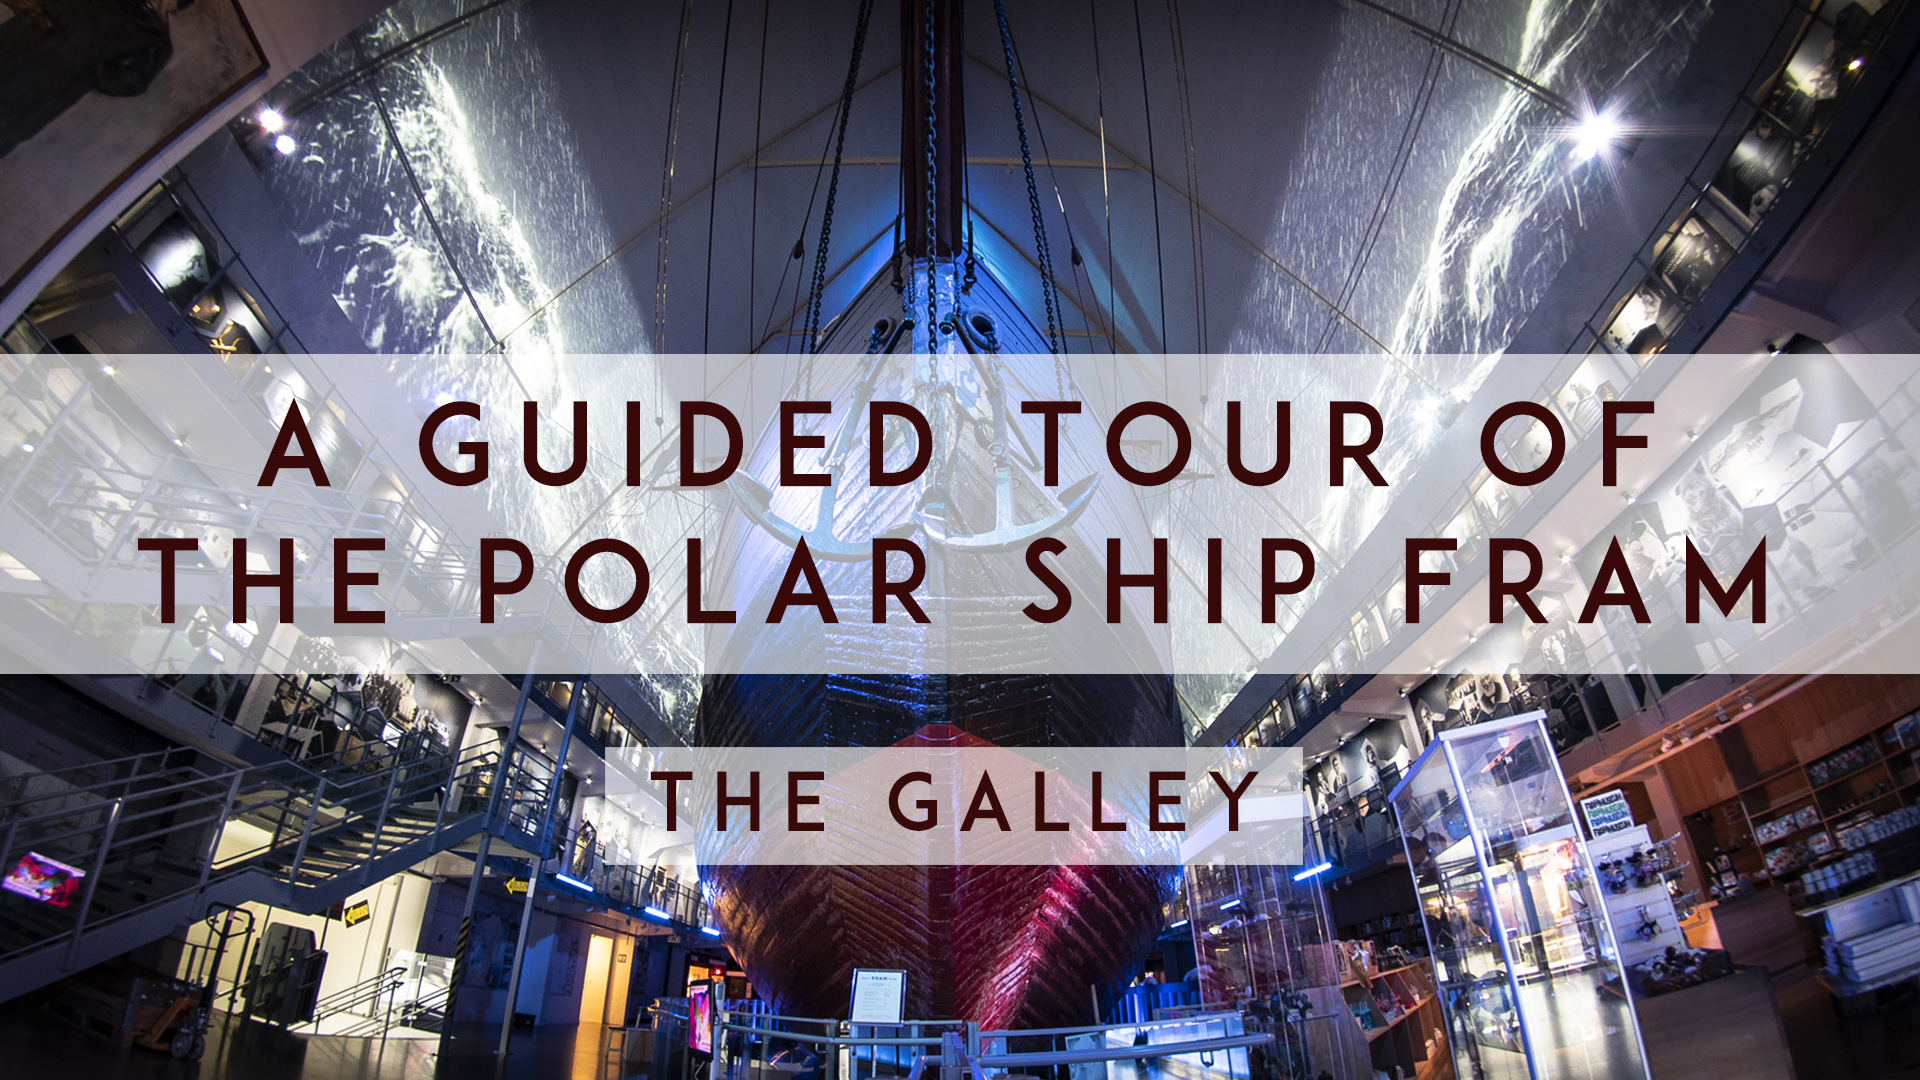 Fram guided tour 5: The Galley